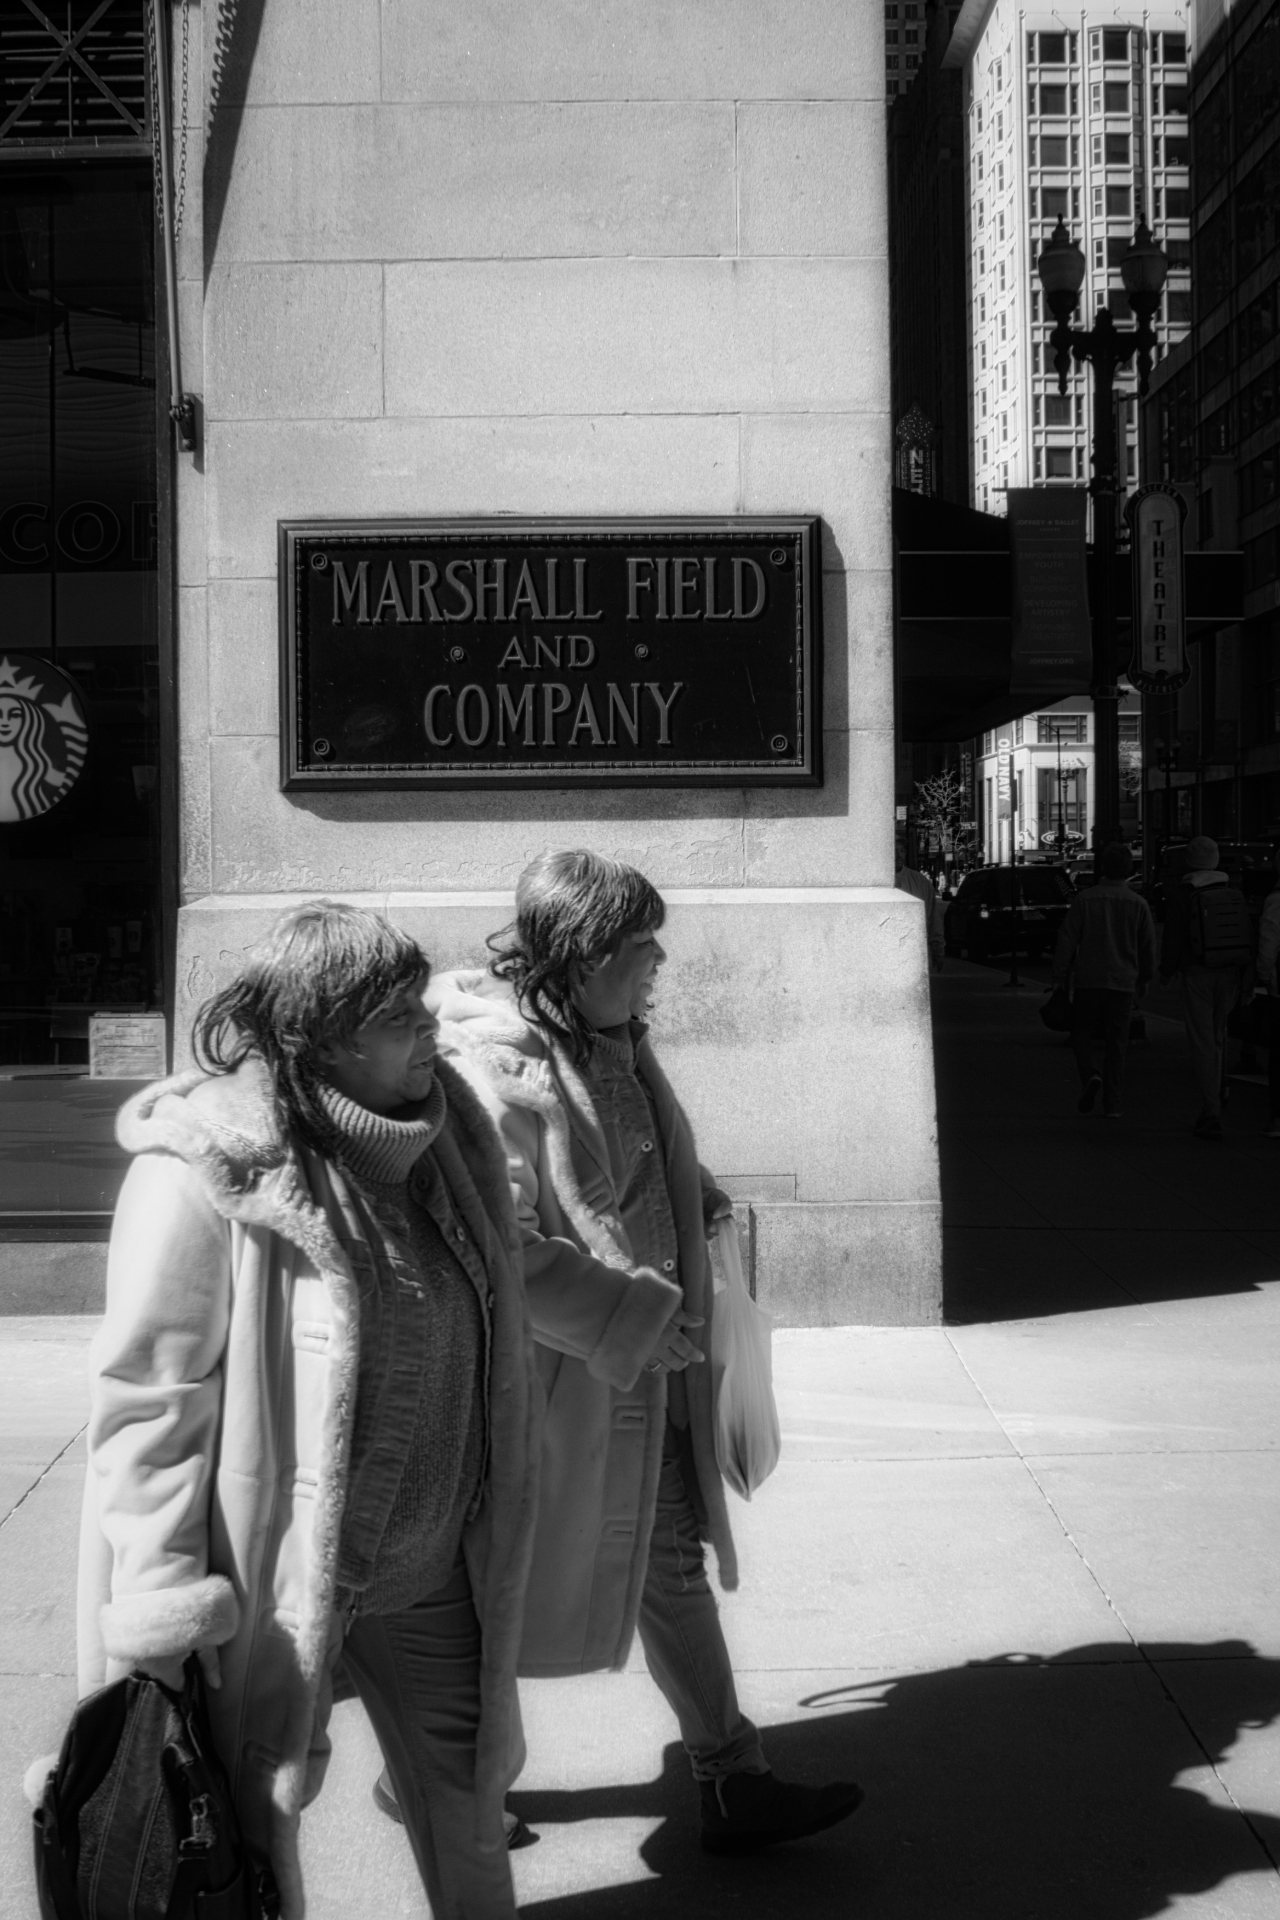 Ladies at Marshall Field's